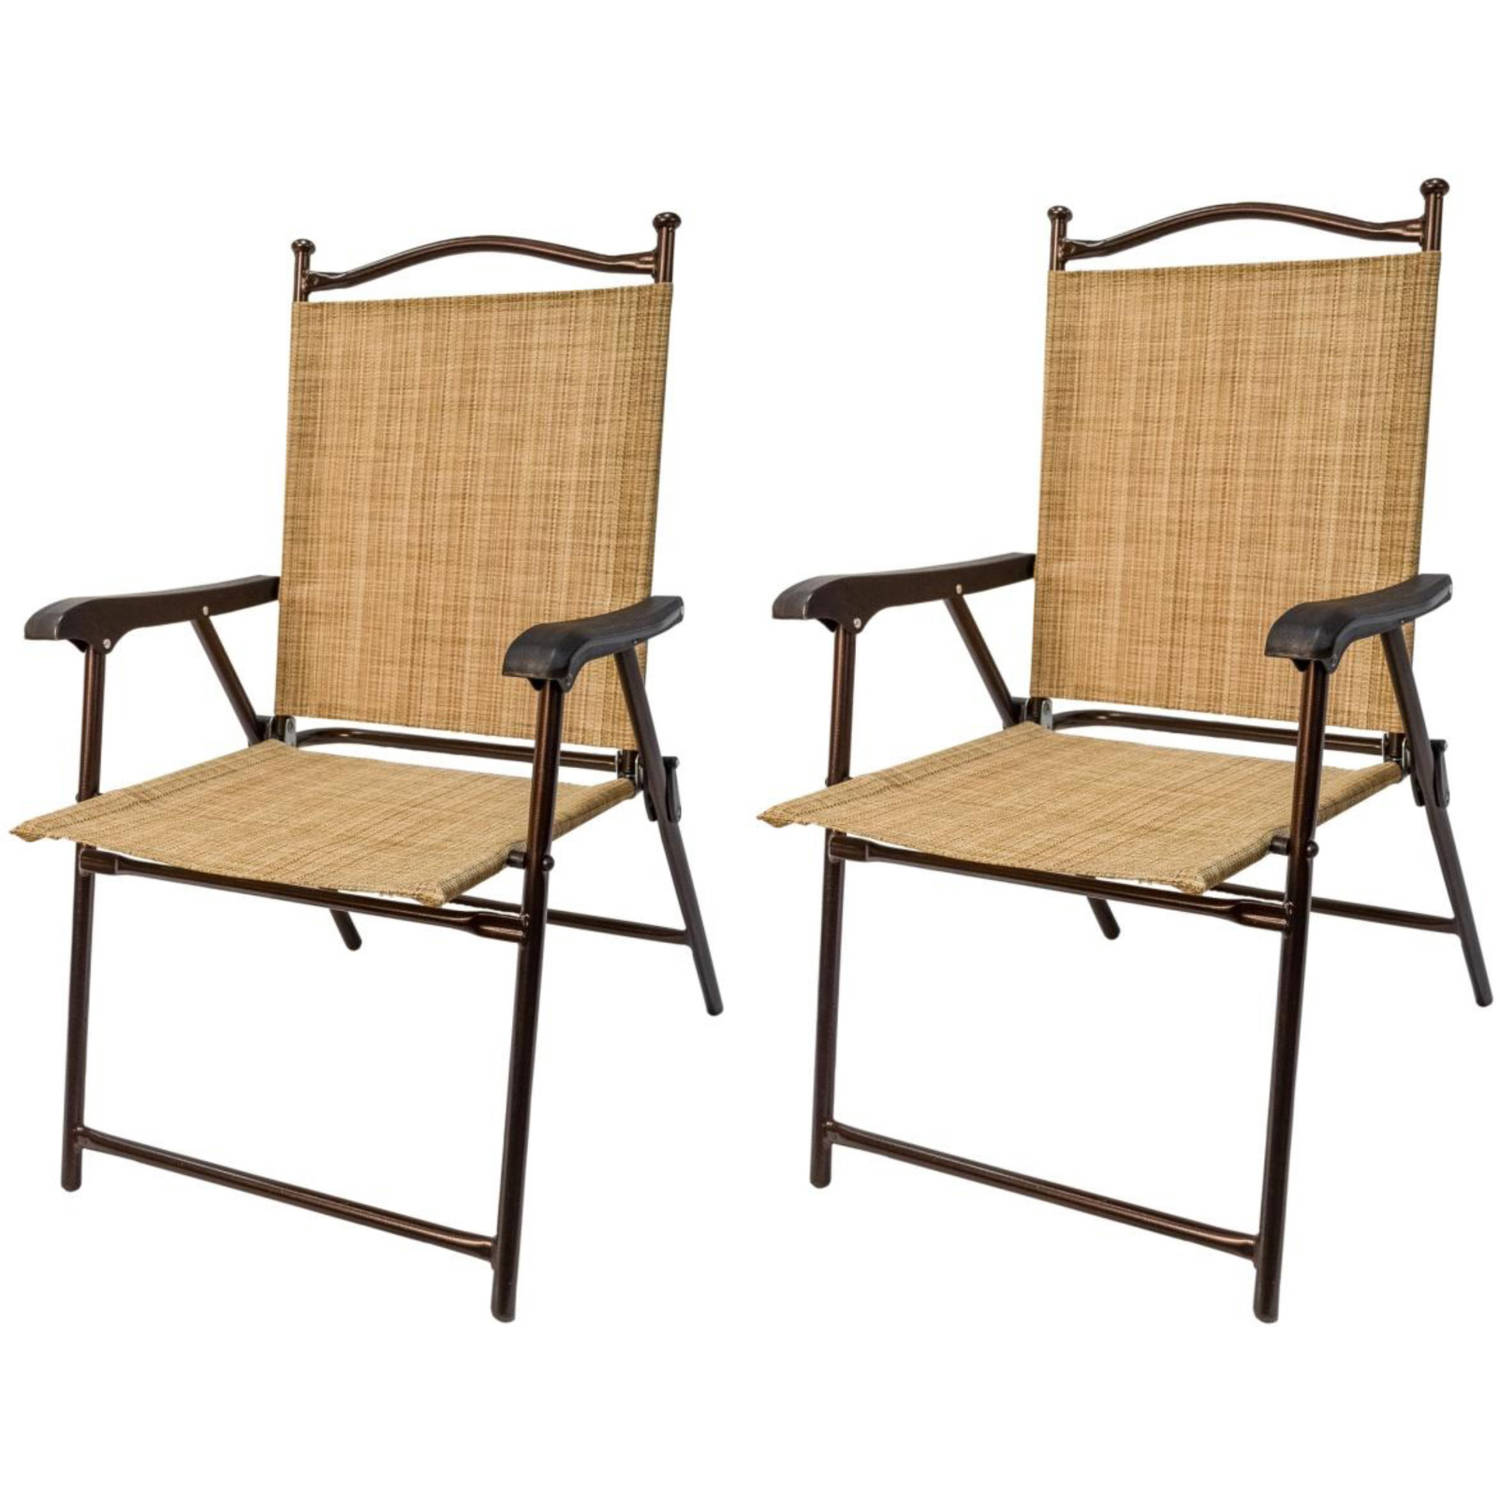 sling black outdoor chairs, bamboo, set of 2 - walmart